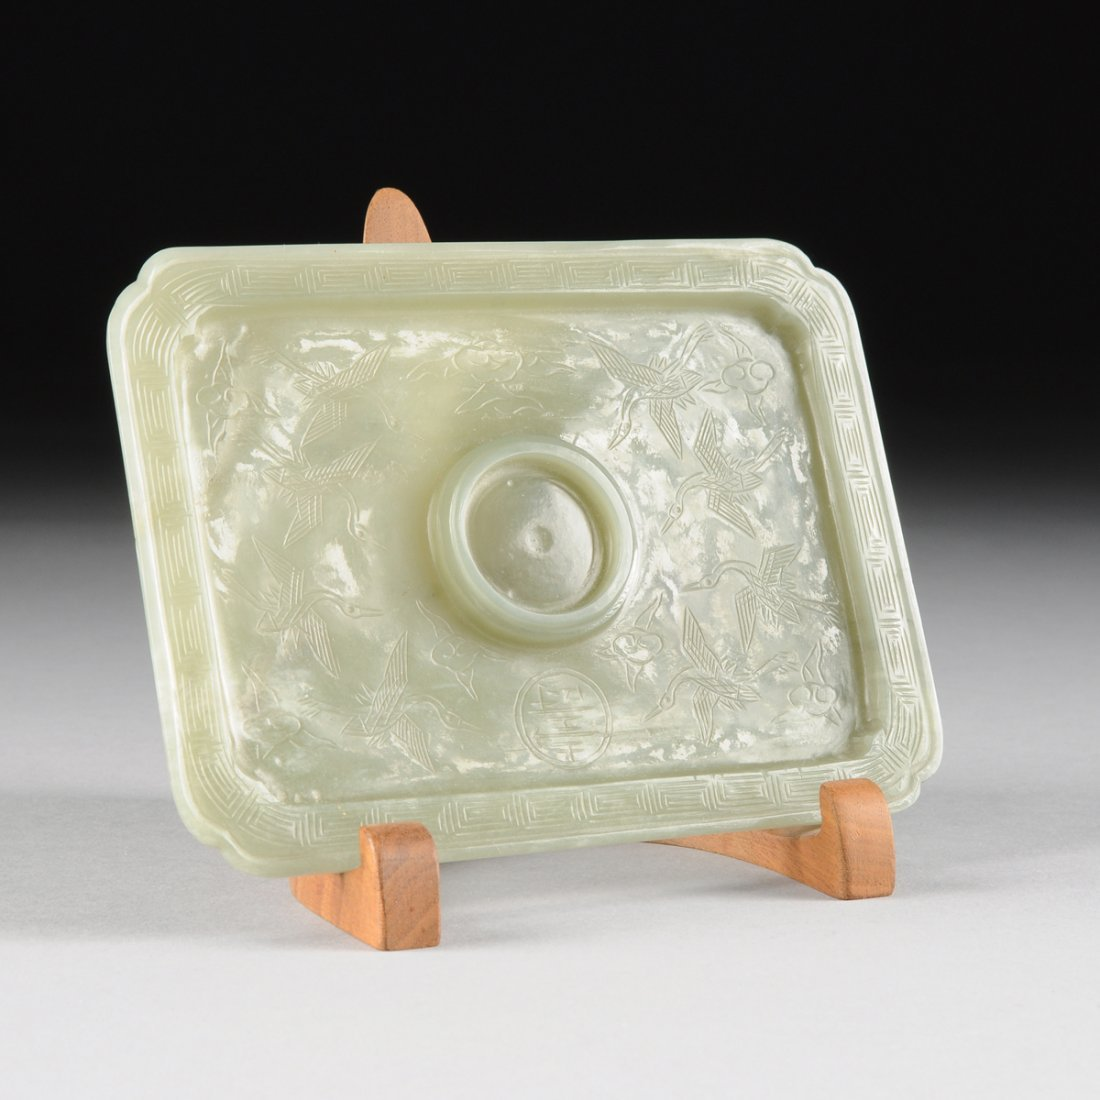 A DIMINUTIVE CHINESE CARVED AND INCISED CELADON JADE